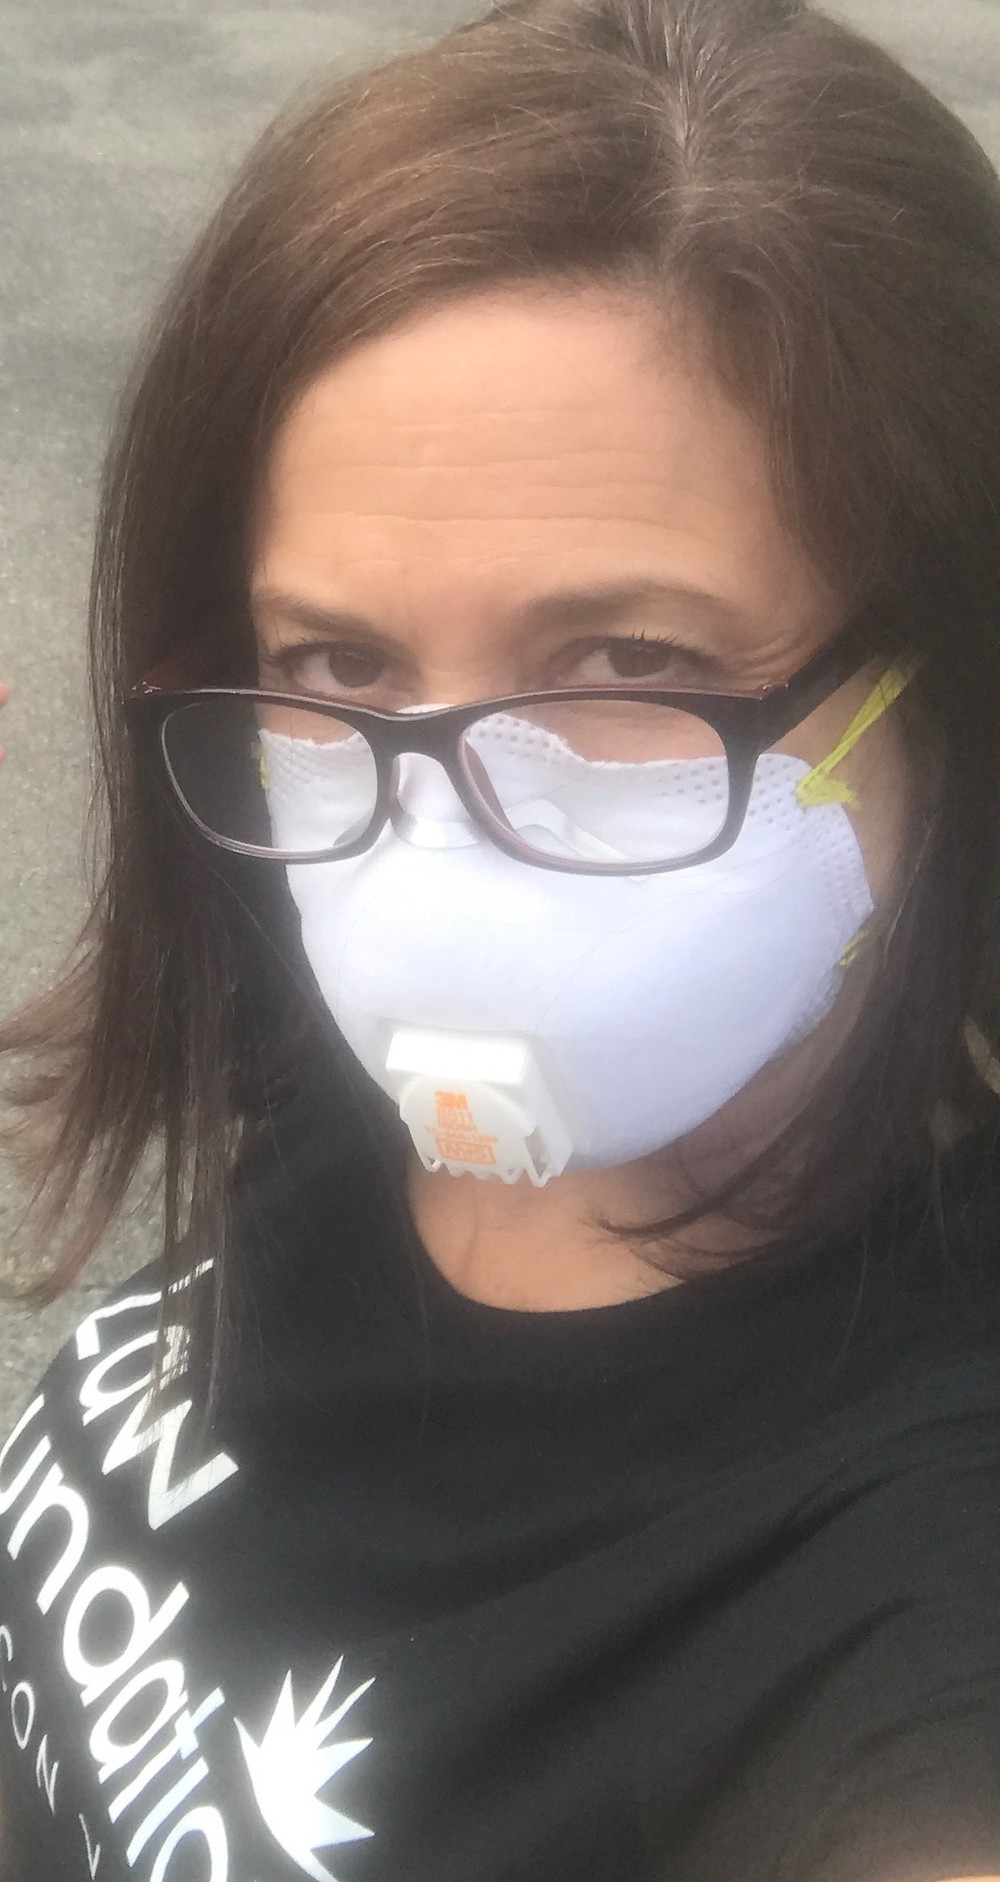 That's me in the photo above wearing a Law Foundation of Silicon Valley t-shirt, mask, and old lady glasses while distributing PPE in the parking lot of the Sobrato Center for Nonprofits to over 60 CBOs. Learn more about the Law Foundation here.